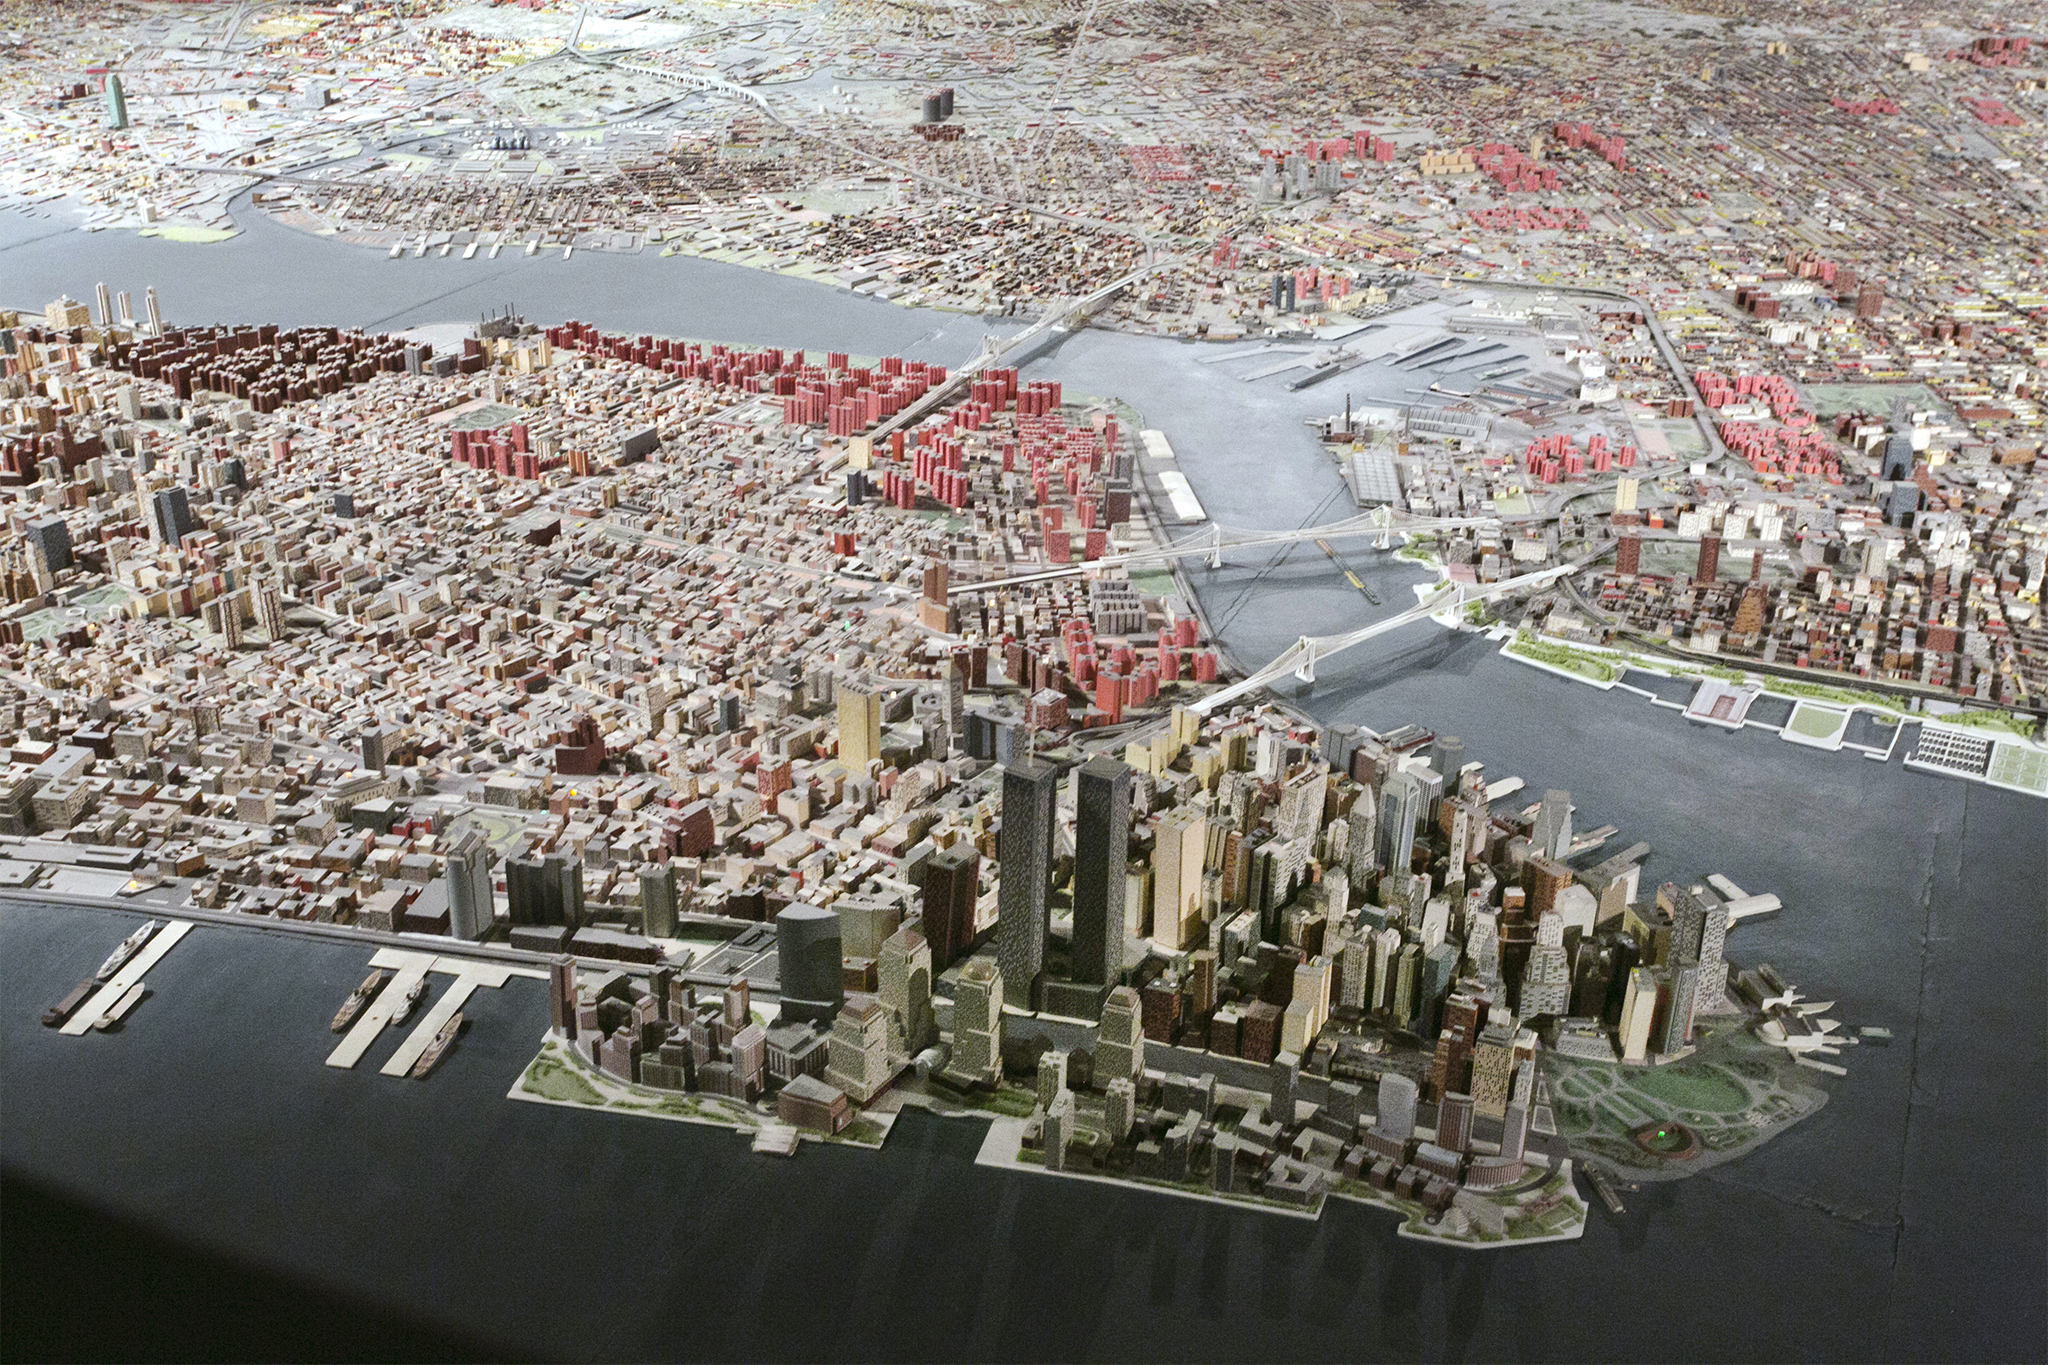 Because, for as little as $50, you can own a piece of New York City. Sort of.